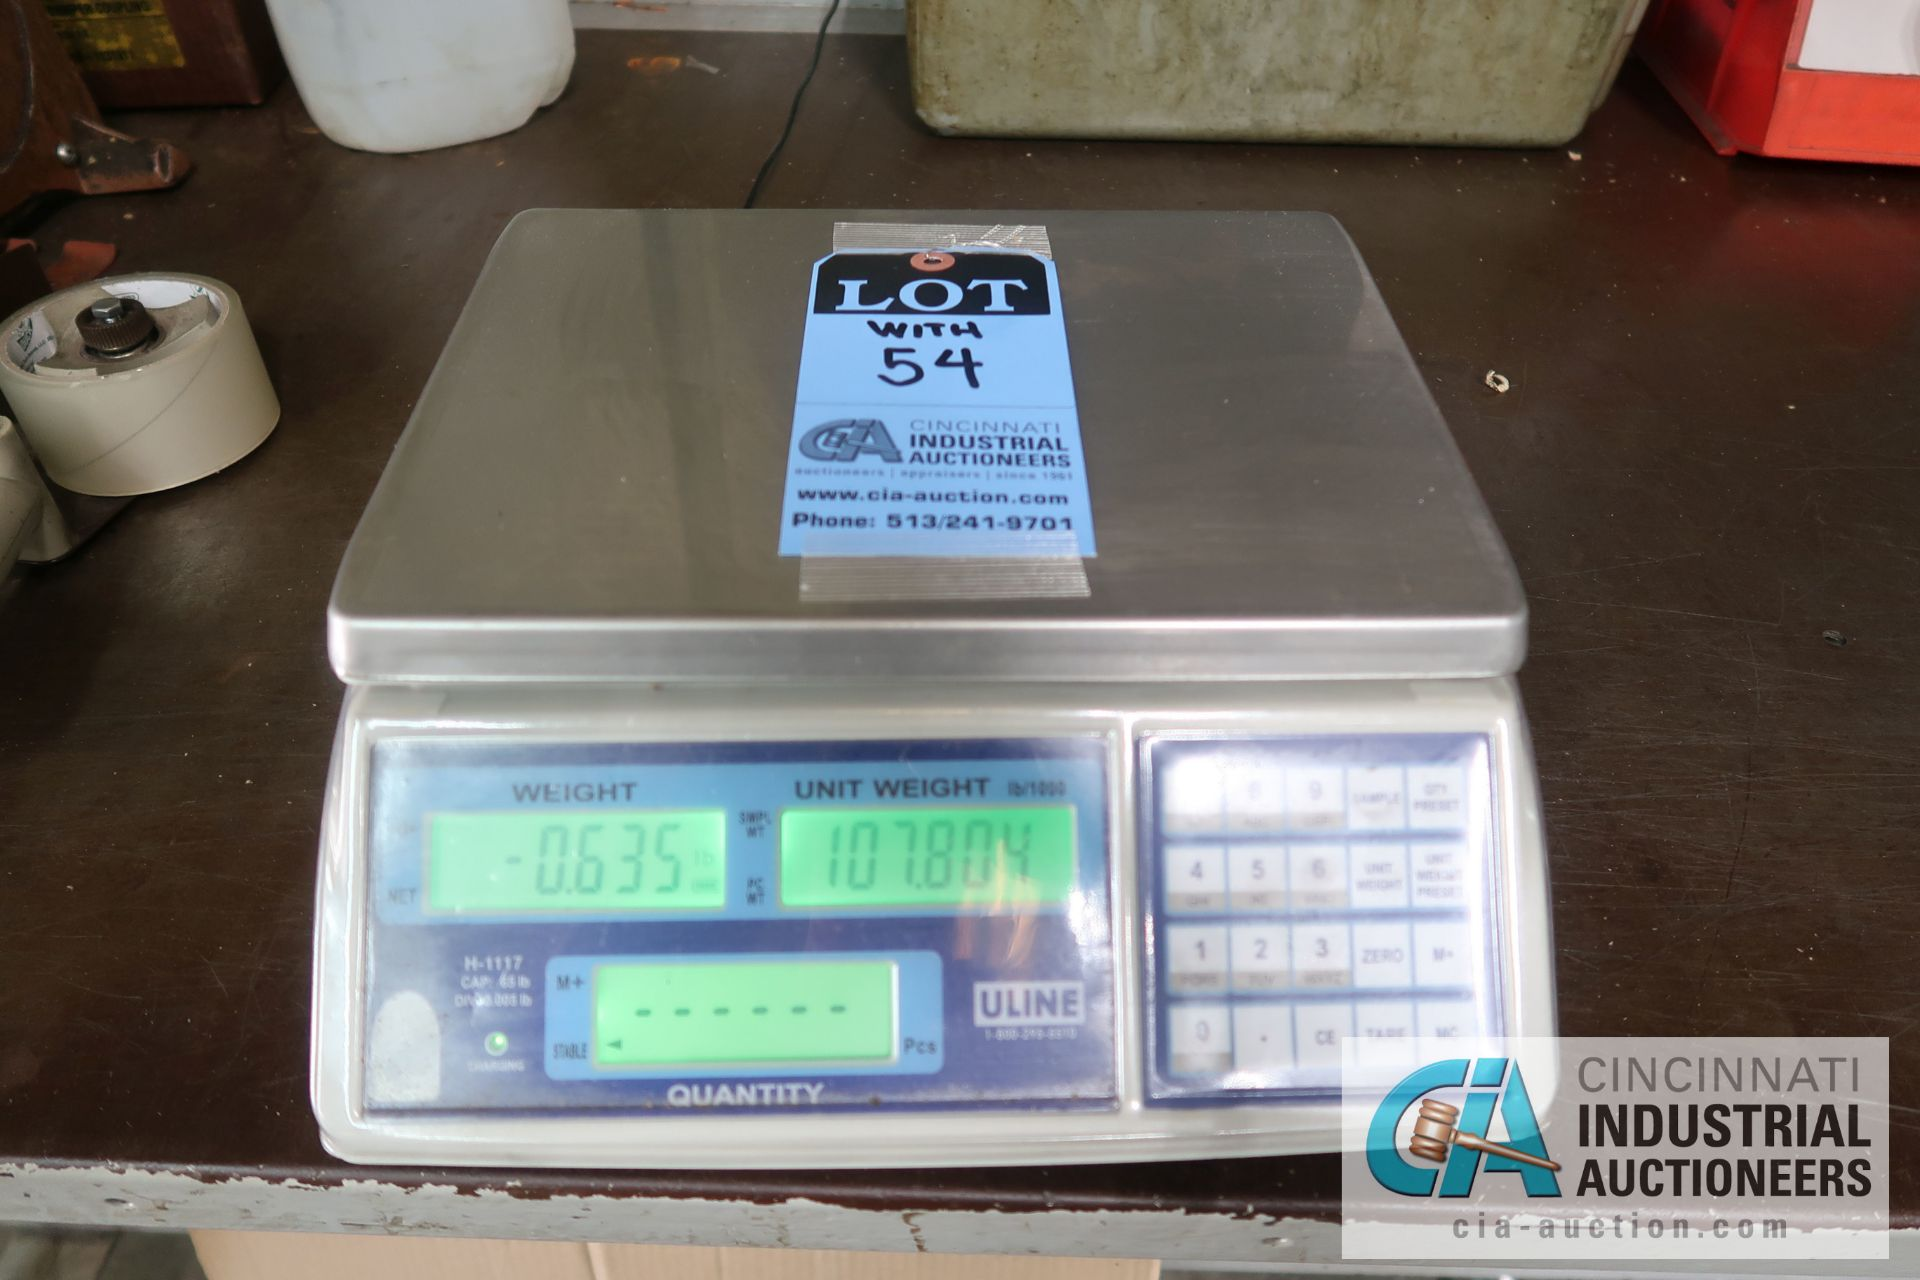 Lot 54 - 100 LB. CAPACITY METTLER-TOLEDO MODEL 8582 COUNTING SCALES WITH (1) 65 LB. CAPACITY ULINE MODEL H-